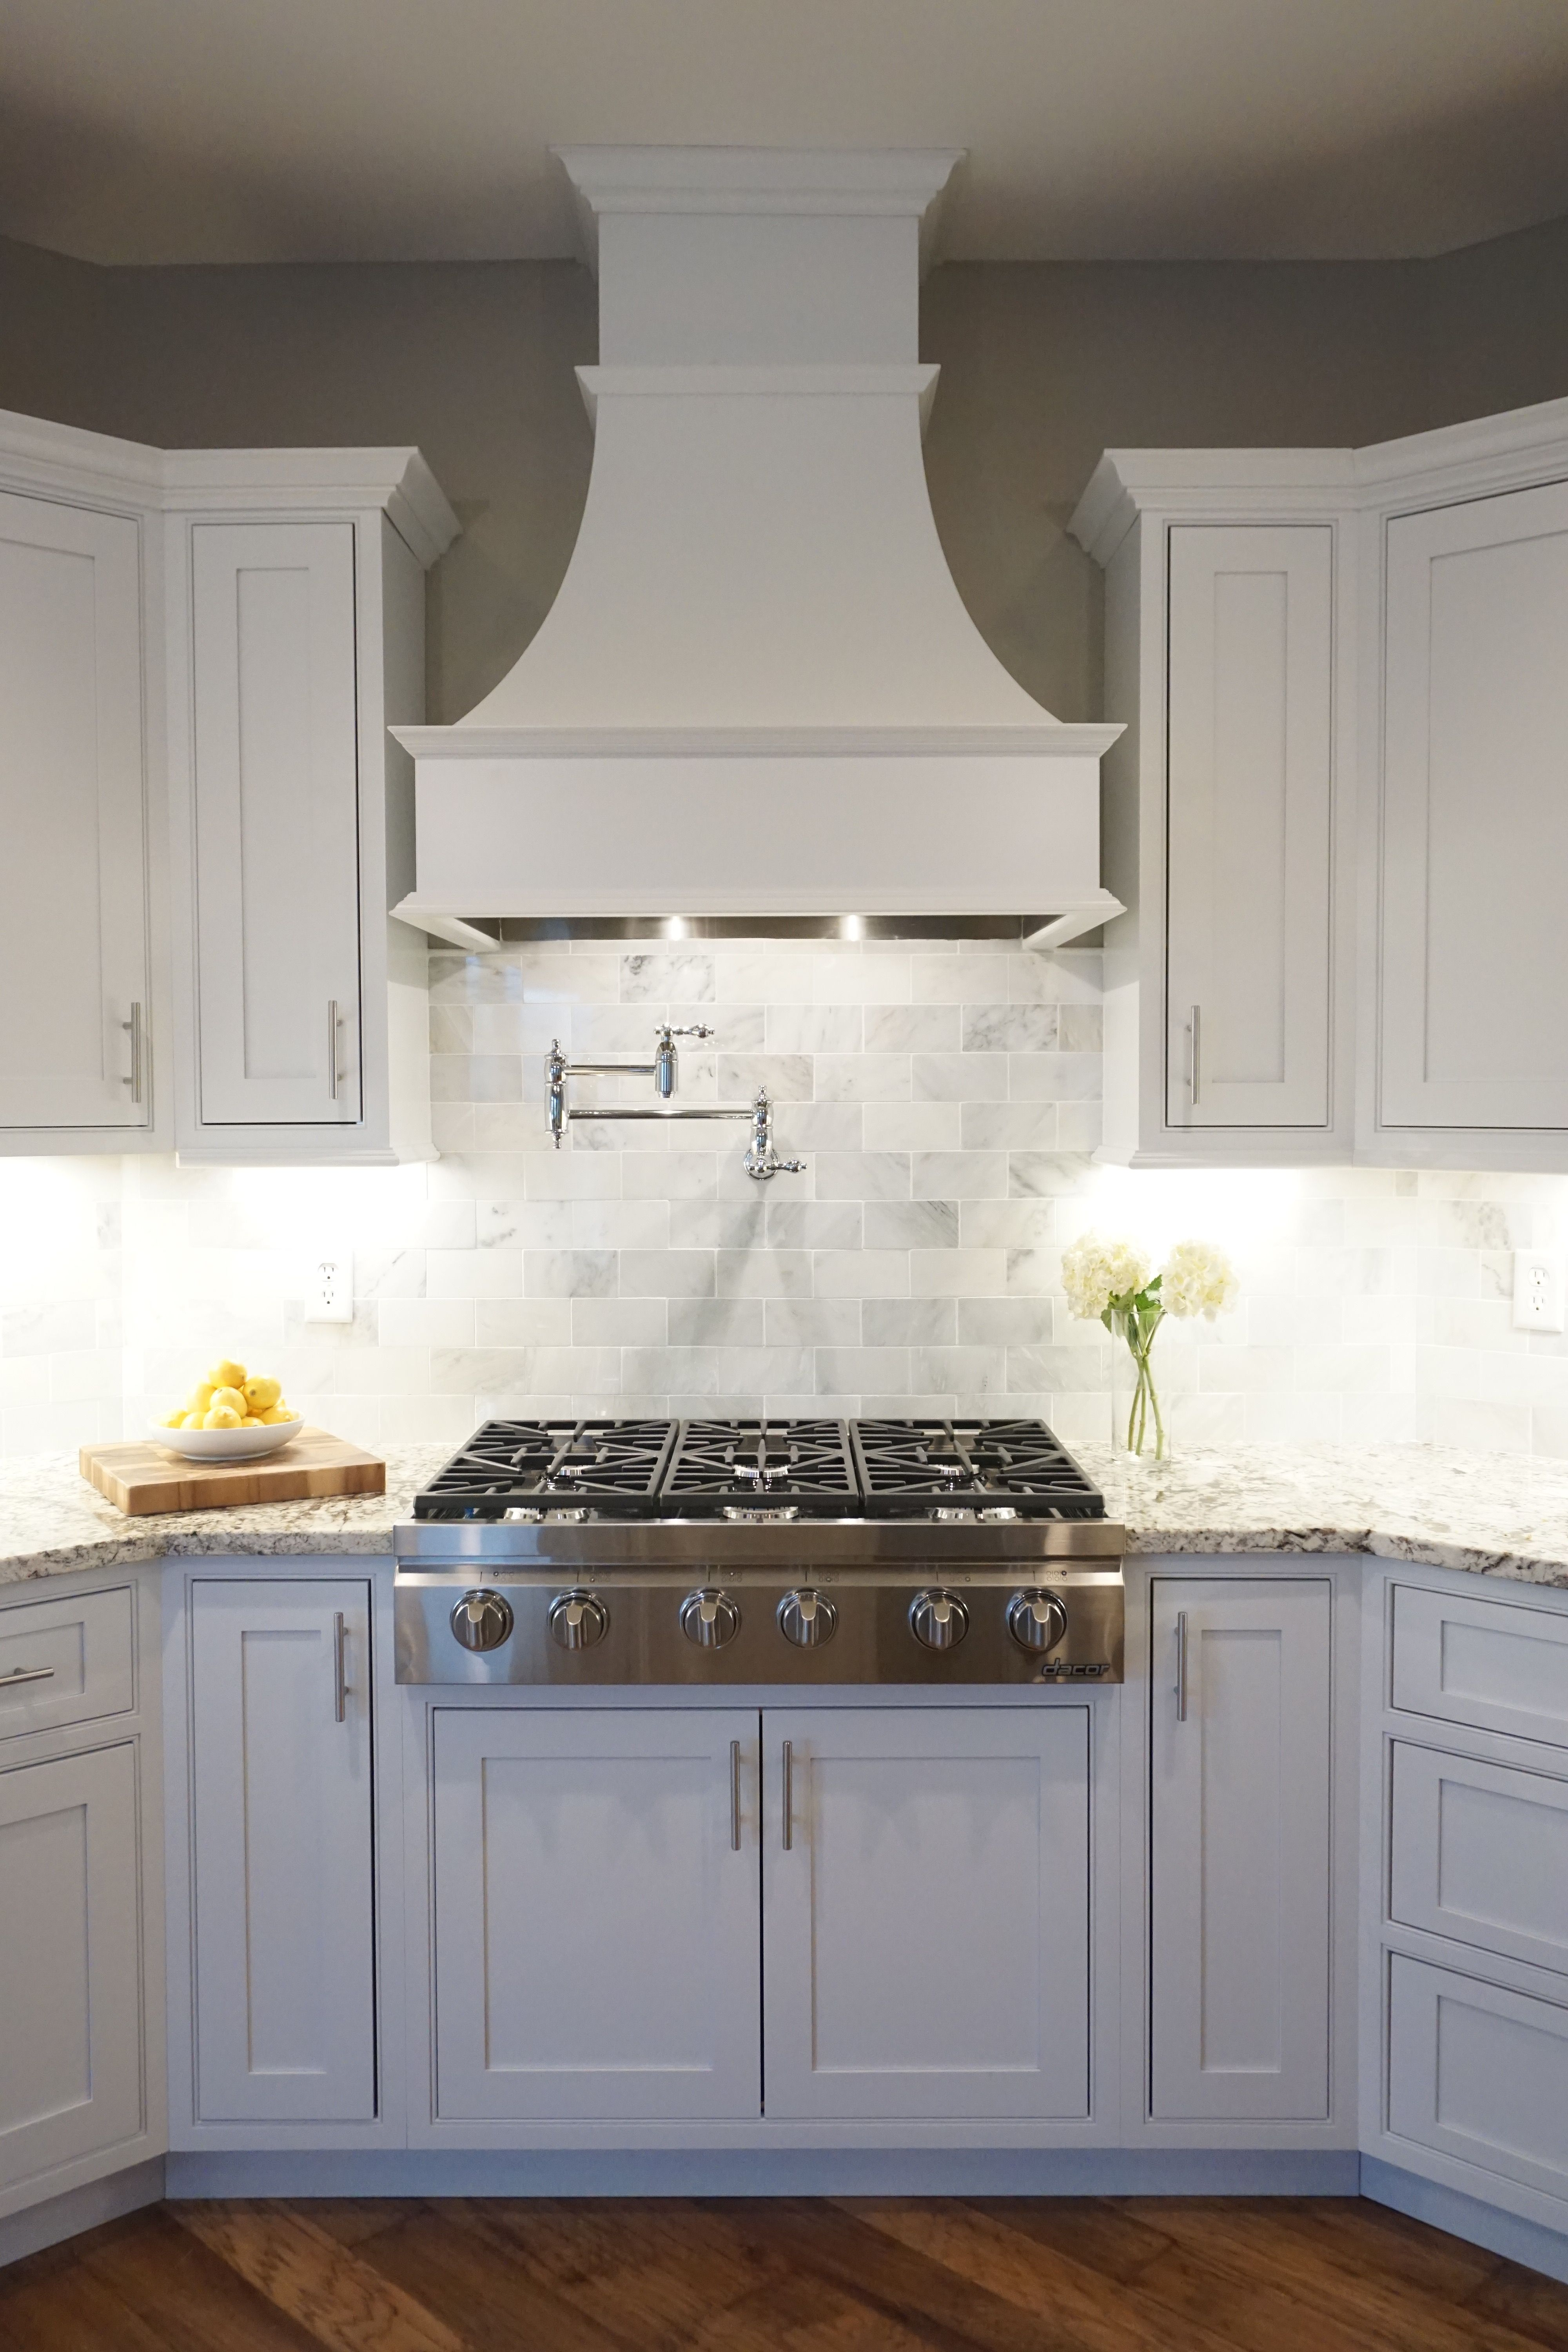 White cabinets shaker door inset cabinetry decorative for Decorative stove hood